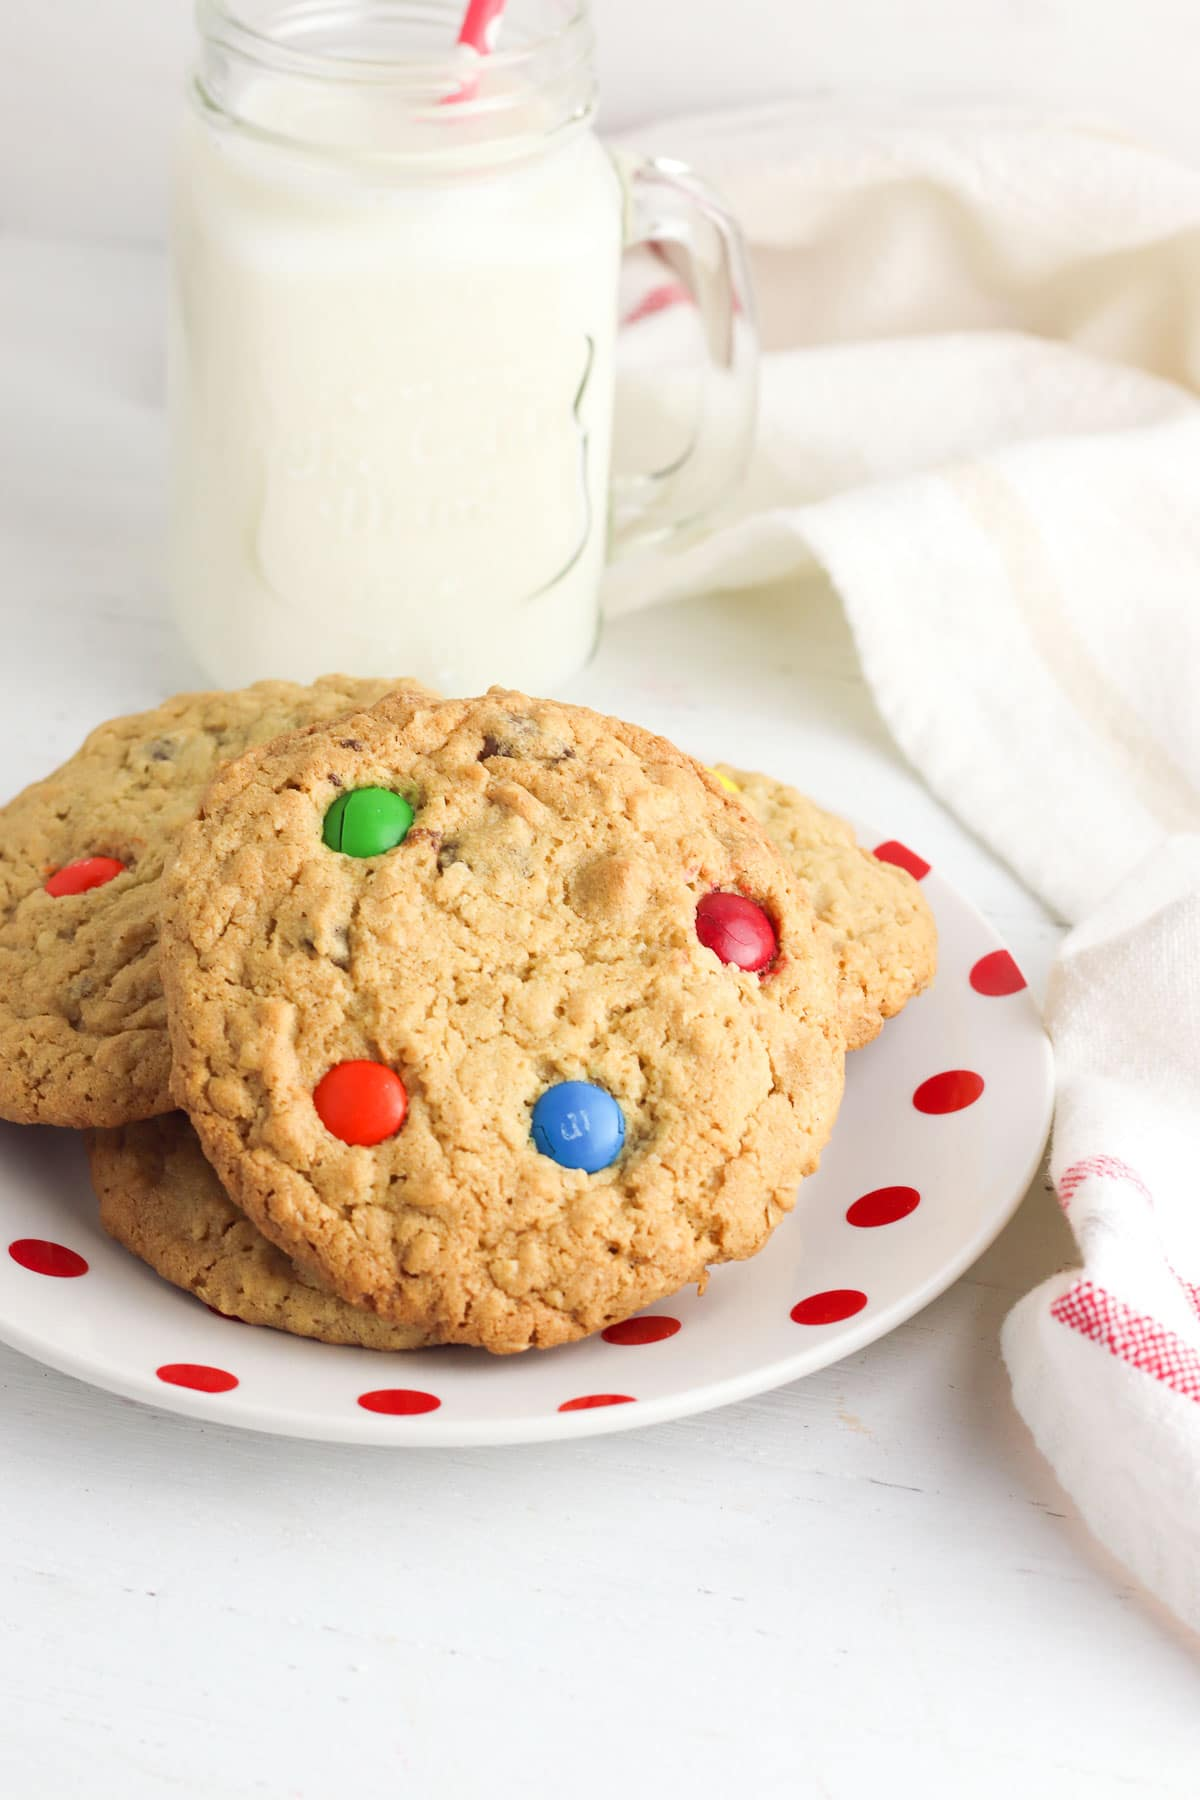 peanut butter chocolate chip cookies on plate